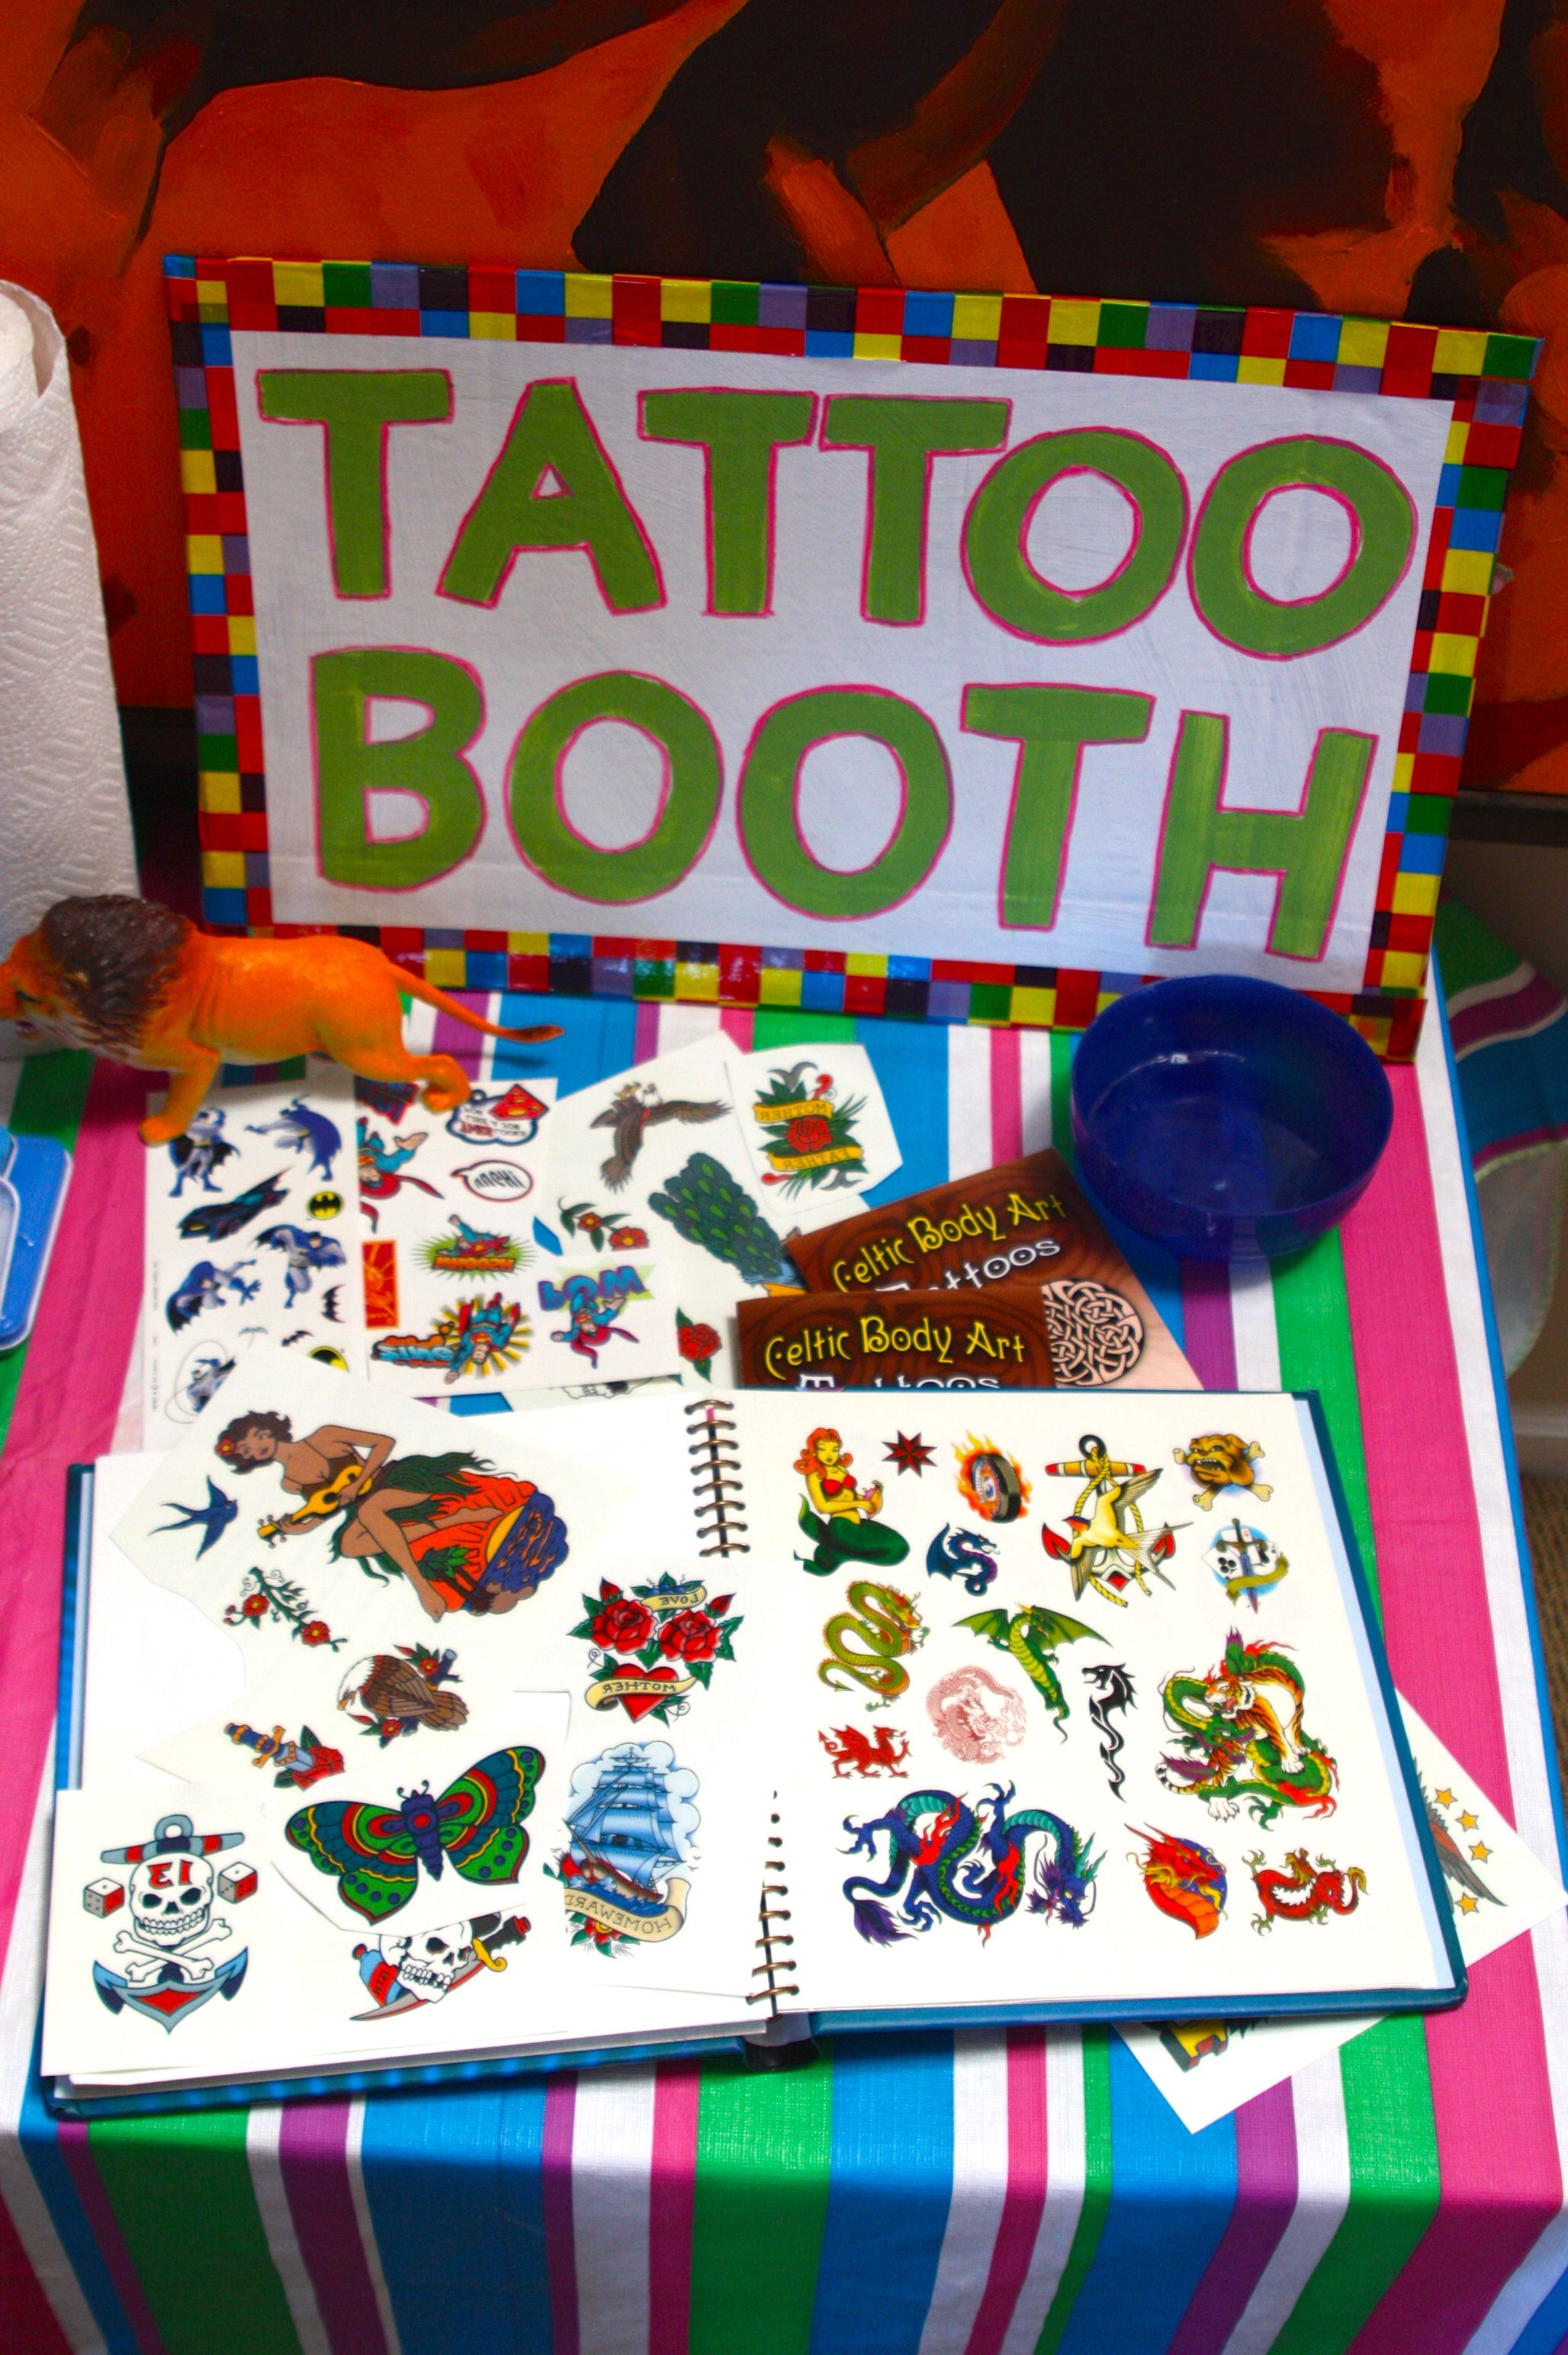 Circus Party Tattoo Booth Birthday Halloween Party Birthday Party Themes Carnival Themed Party